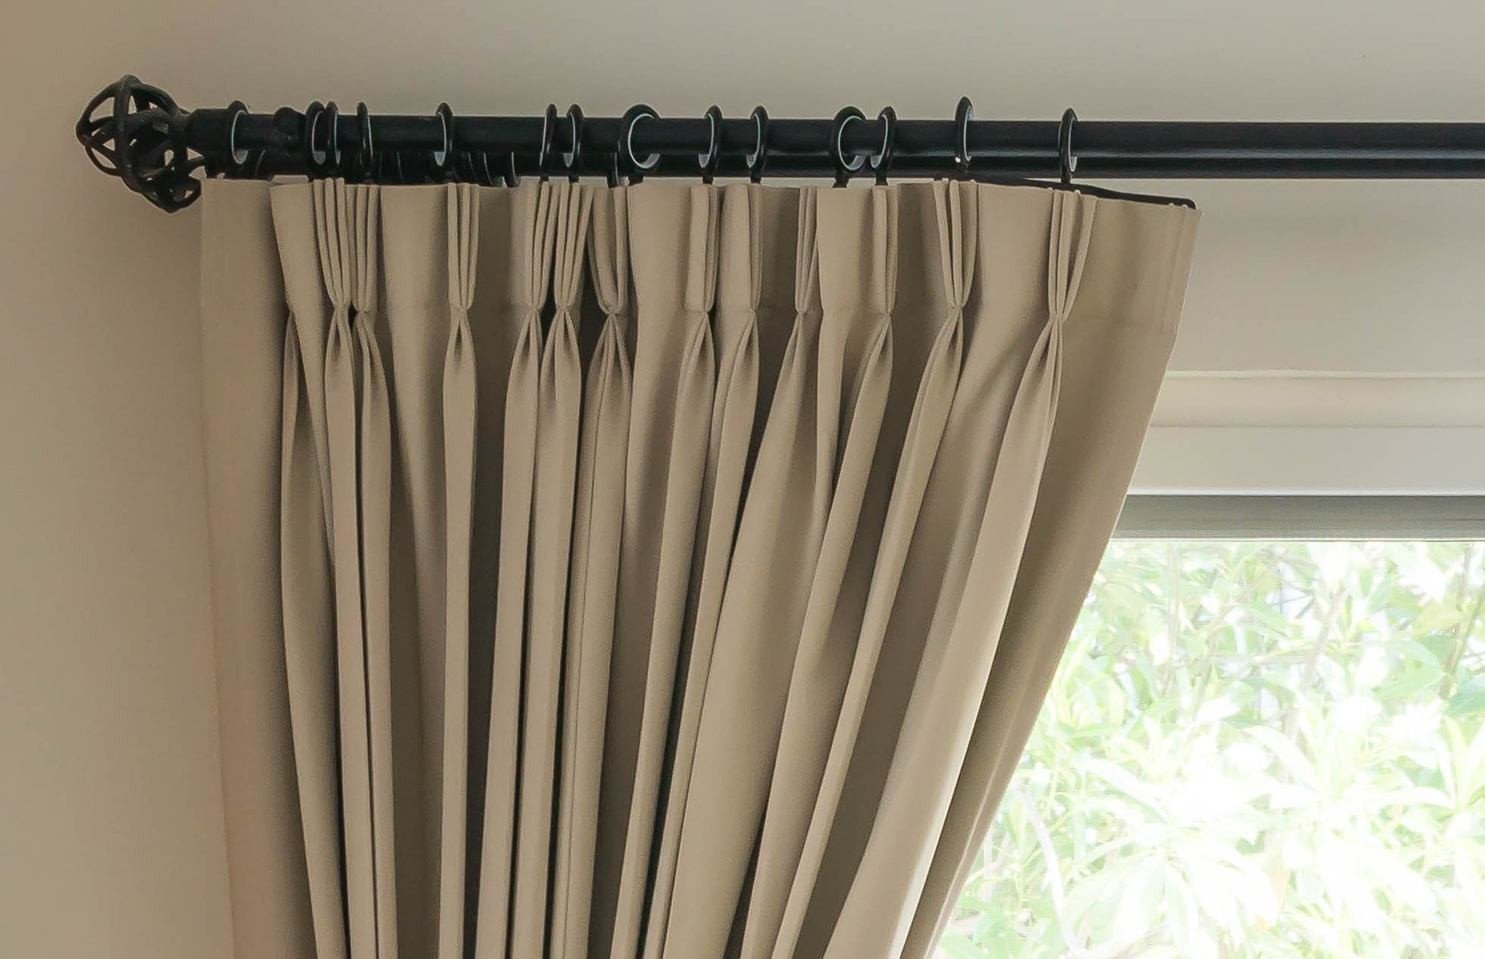 curtain attractive poles for eyelet curtains 11 pole curtain poles for JFNARLG